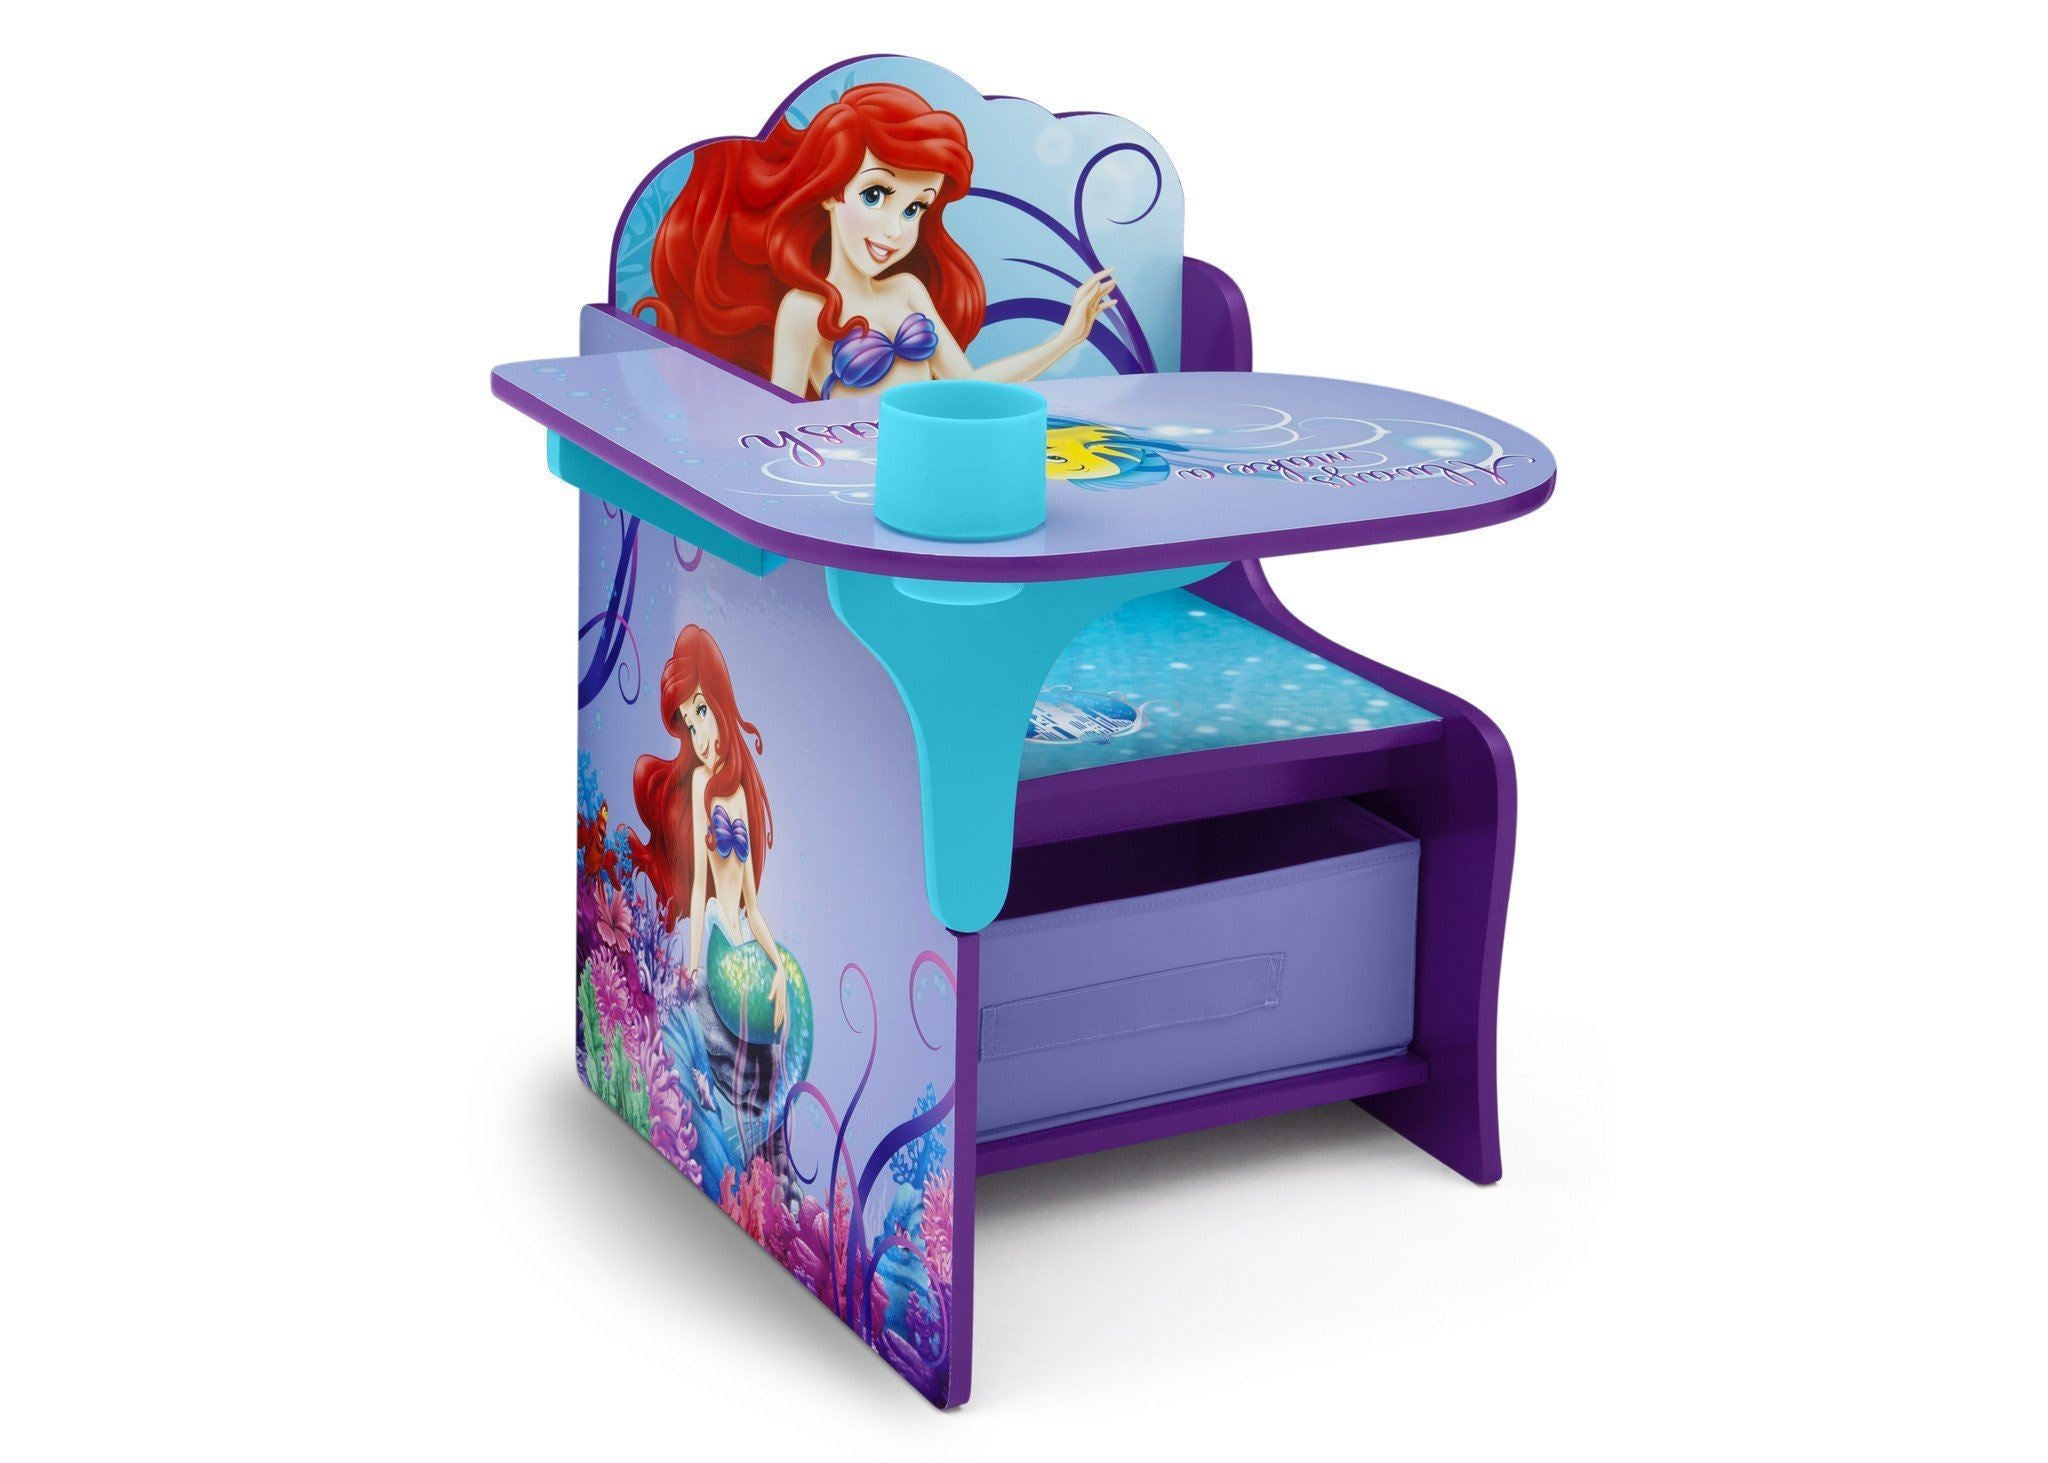 Appealing Little Mermaid Table And Chair Set Gallery - Best Image ...